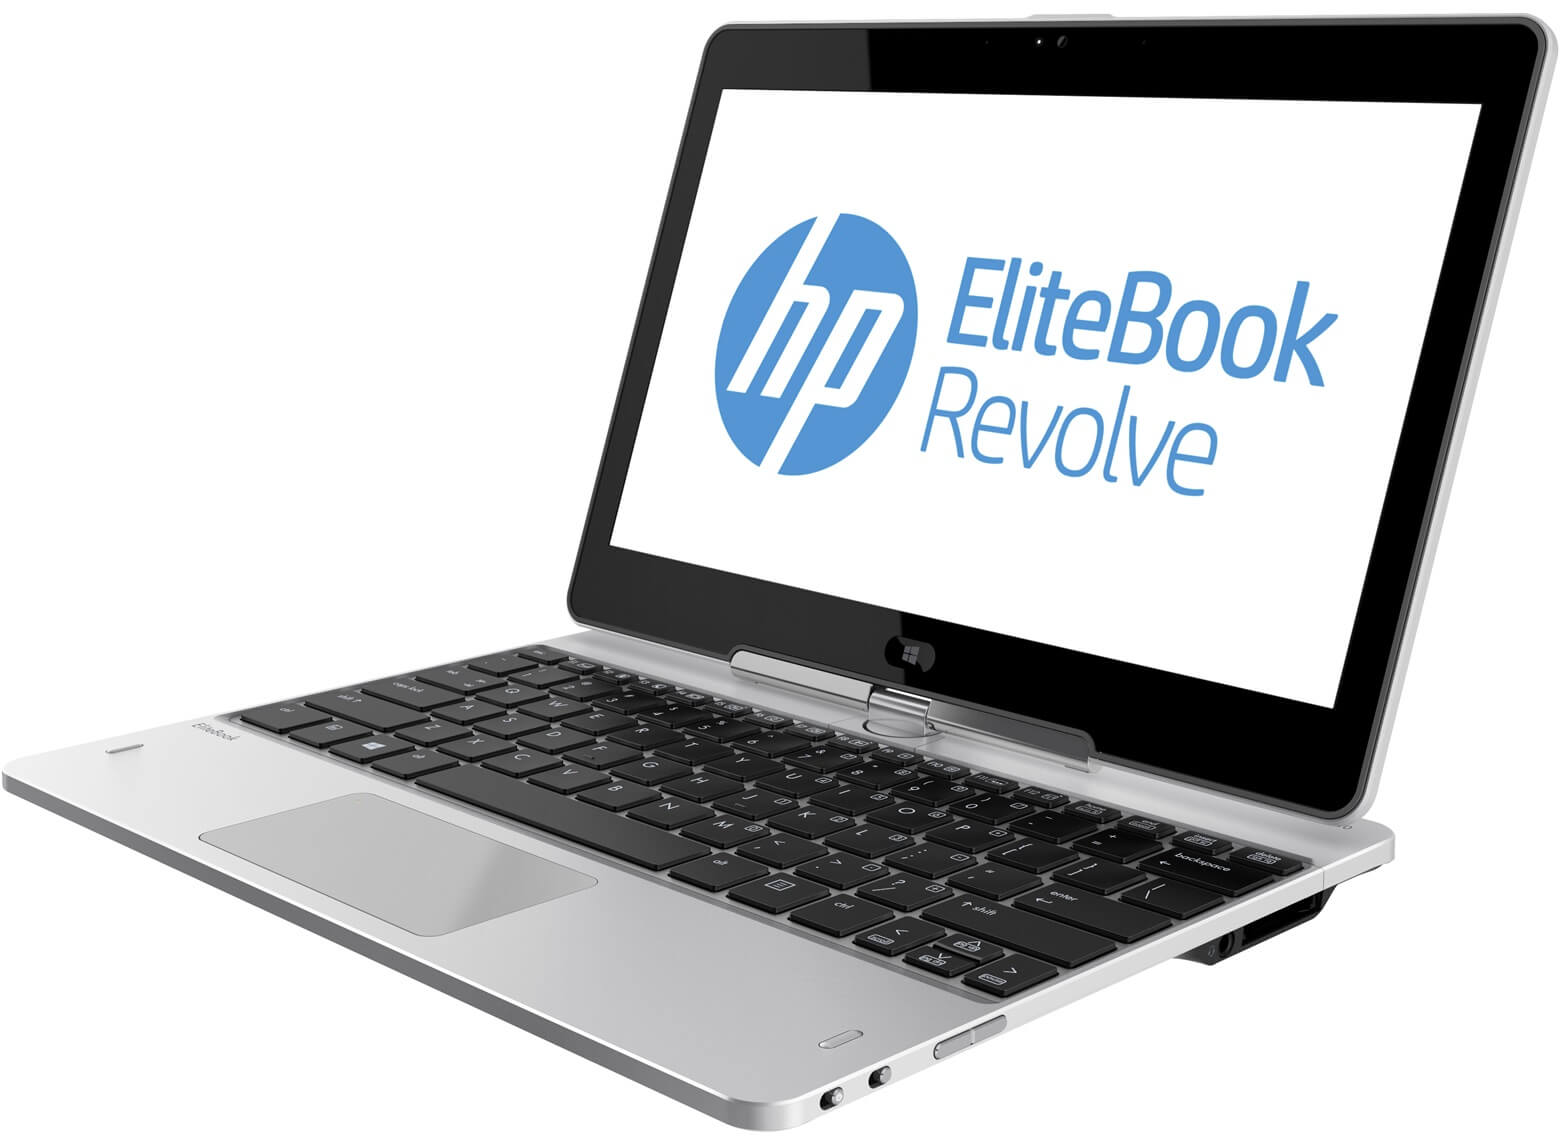 HP ELITEBOOK REVOLVE 810 G2 TABLET I5-4300U 1.9 / 8192MB DDR3L / 256GB SSD M.2 / SYSTEM WINDOWS 10 REFURBISHED PL / 11.6